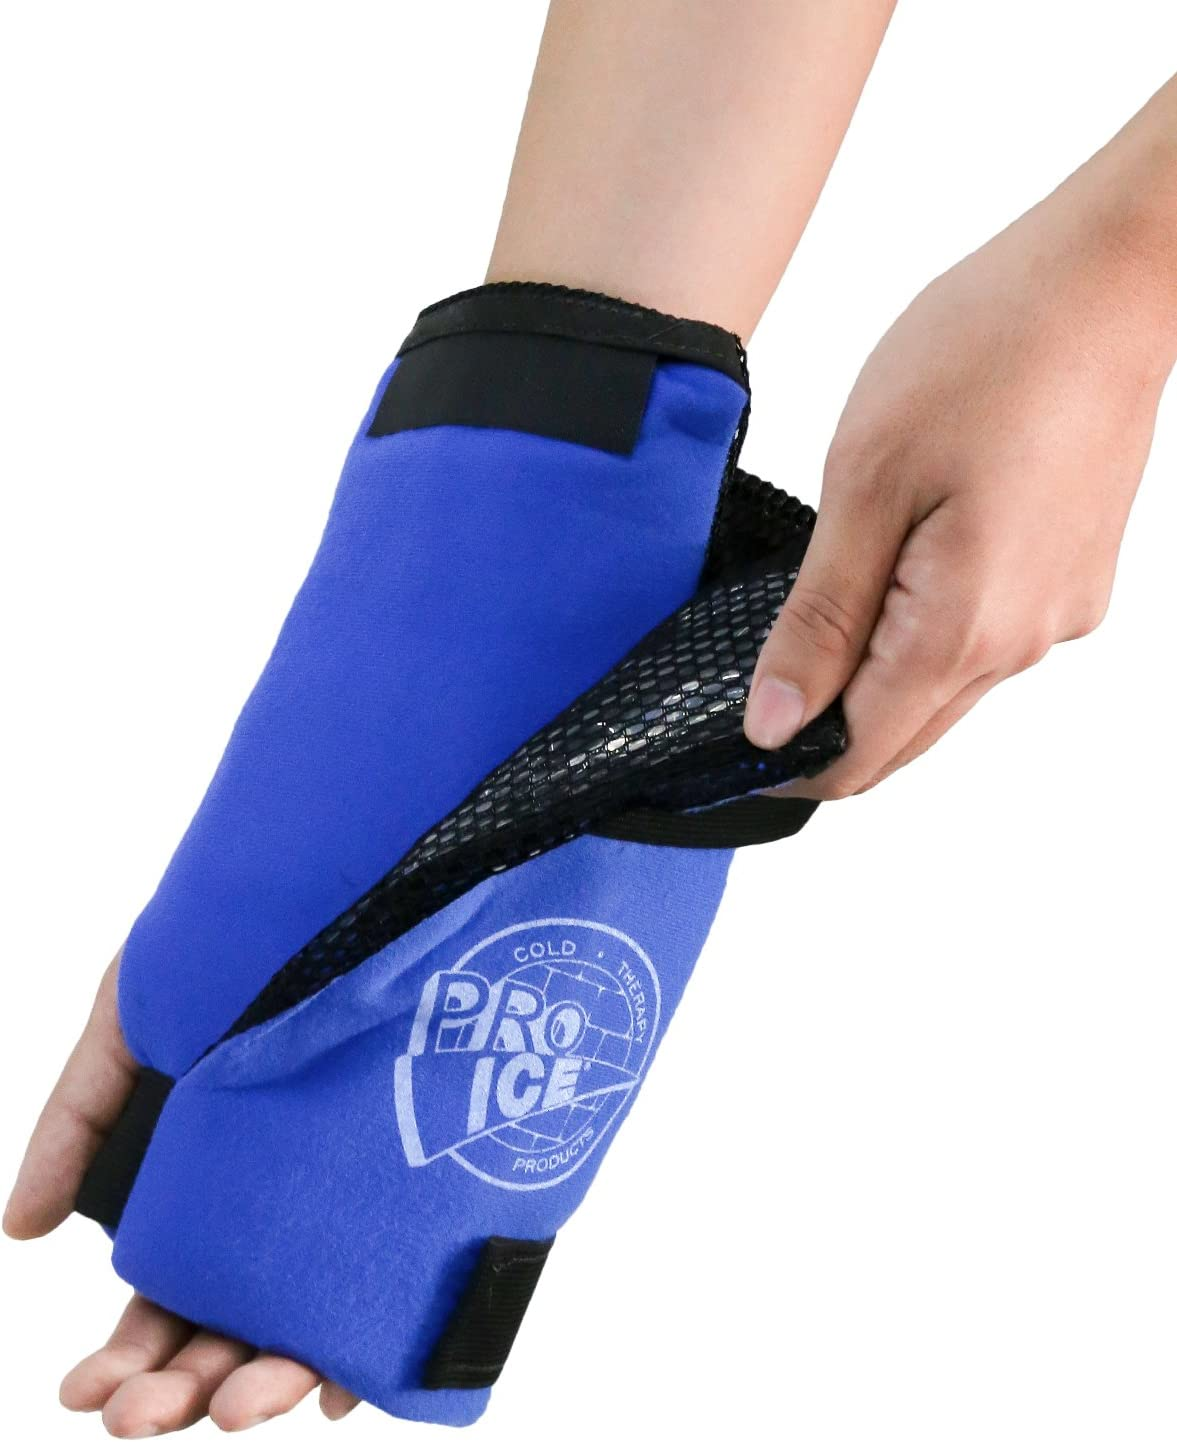 Pro Ice Wrist Ice Pack Wrap with Compression for Carpal Tunnel Pain, Arthritis, Tendonitis, Hand Injuries PI300